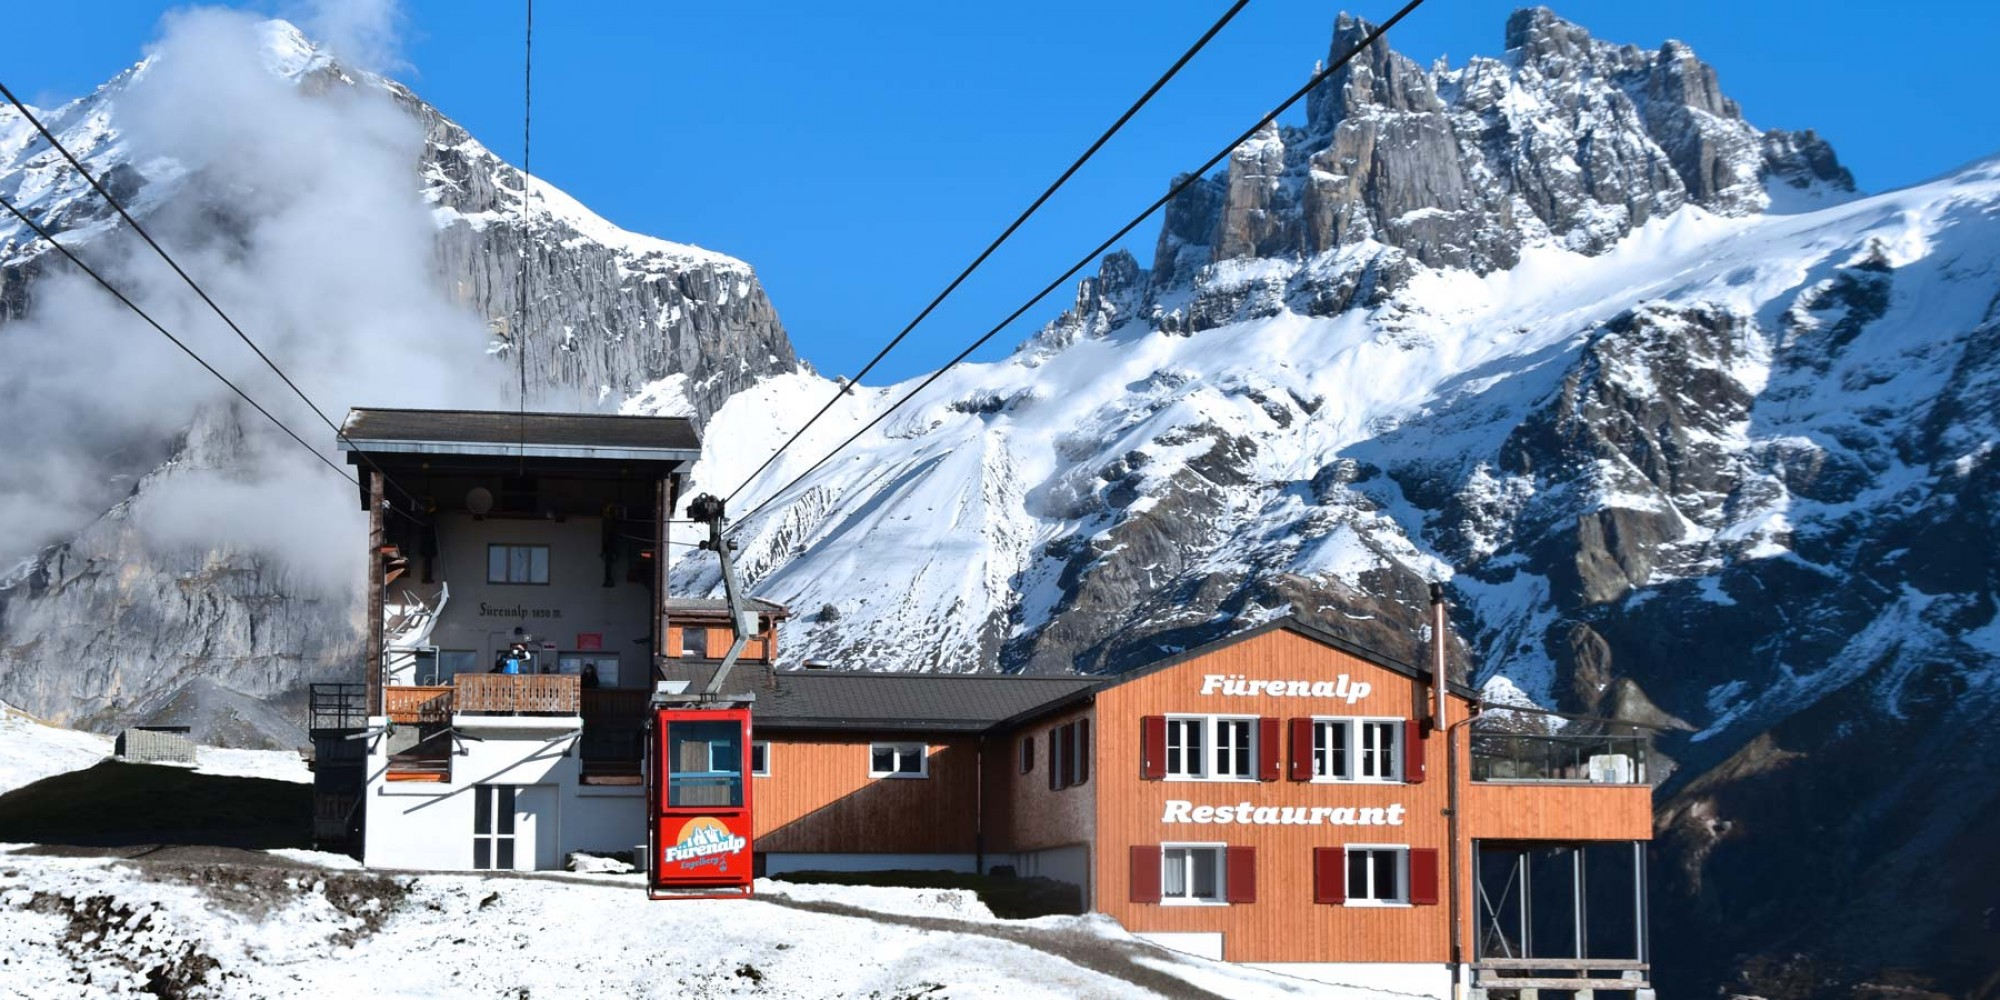 Engelberg_Fuerenalp_Restaurant_Station_Winter_1.jpg